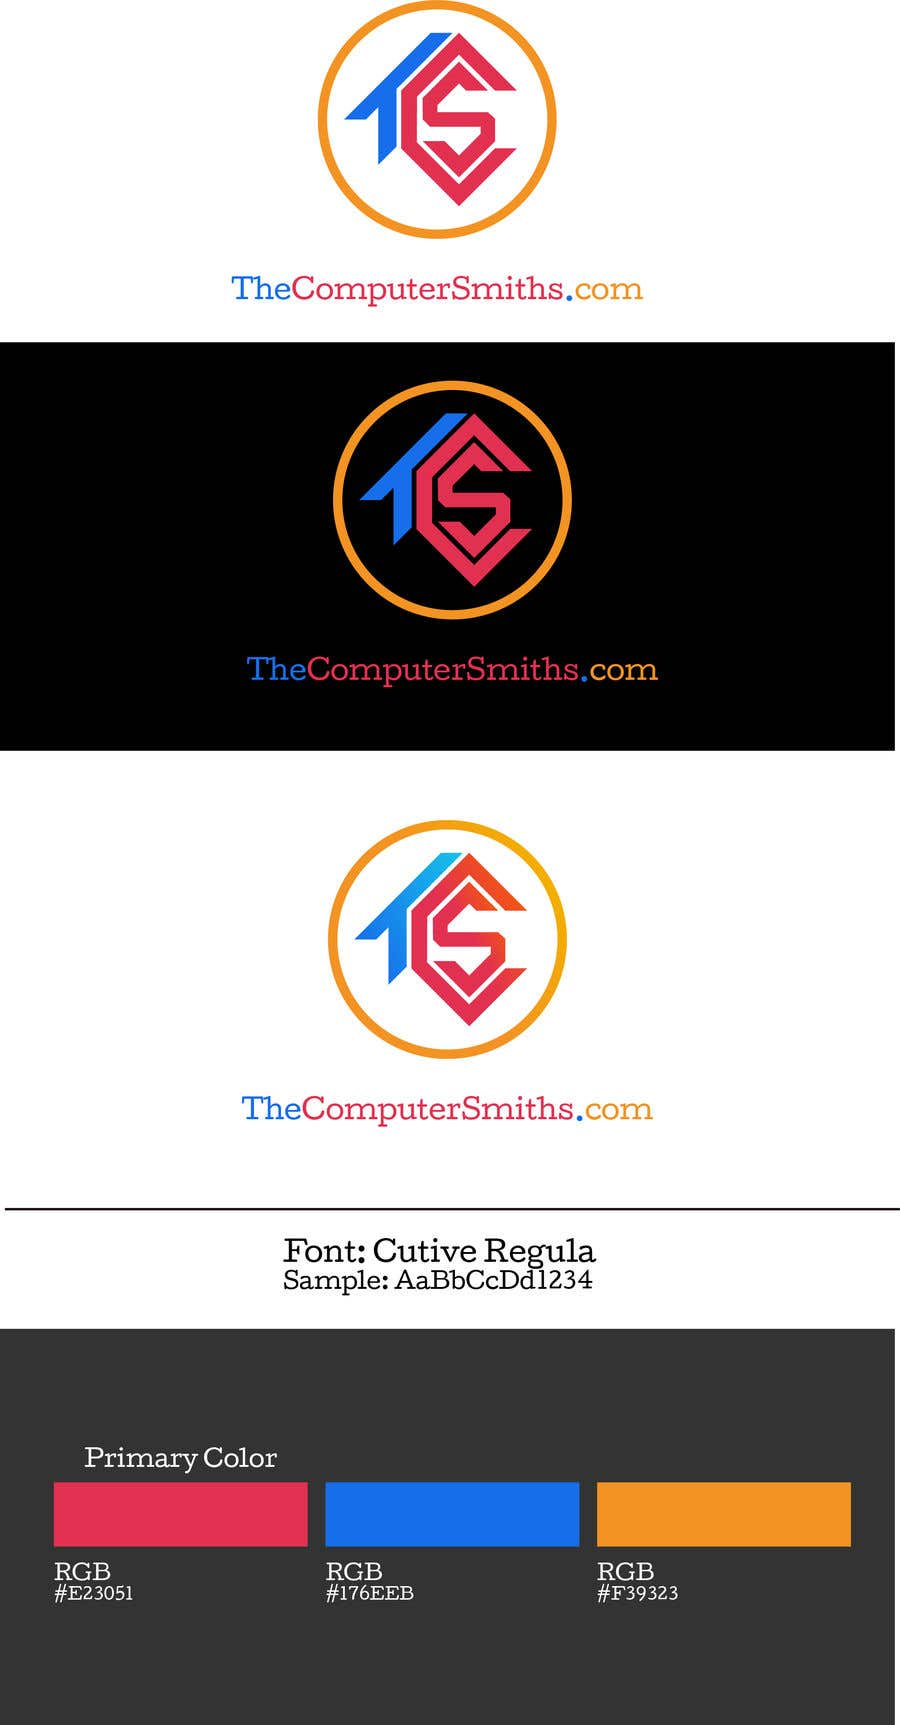 Penyertaan Peraduan #                                        95                                      untuk                                         I'm looking for a logo to be designed for a wordpress website called The Computer Smiths's .com